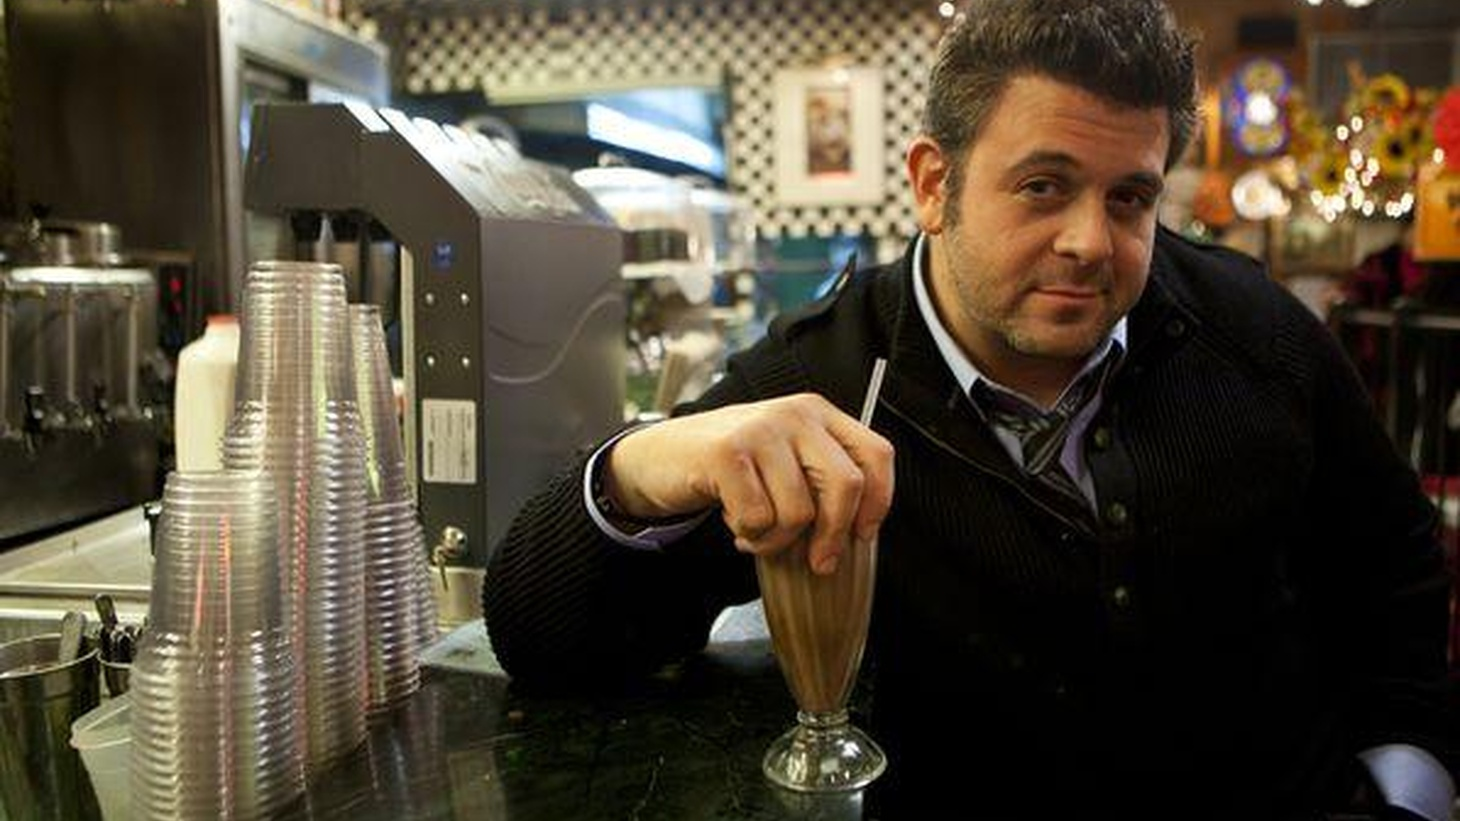 Adam Richman has accomplished some incredible culinary feats across the country on his show Man vs. Food, but it's his Brooklyn roots that inspire his musical choices, including the Beastie Boys and Jay Z.